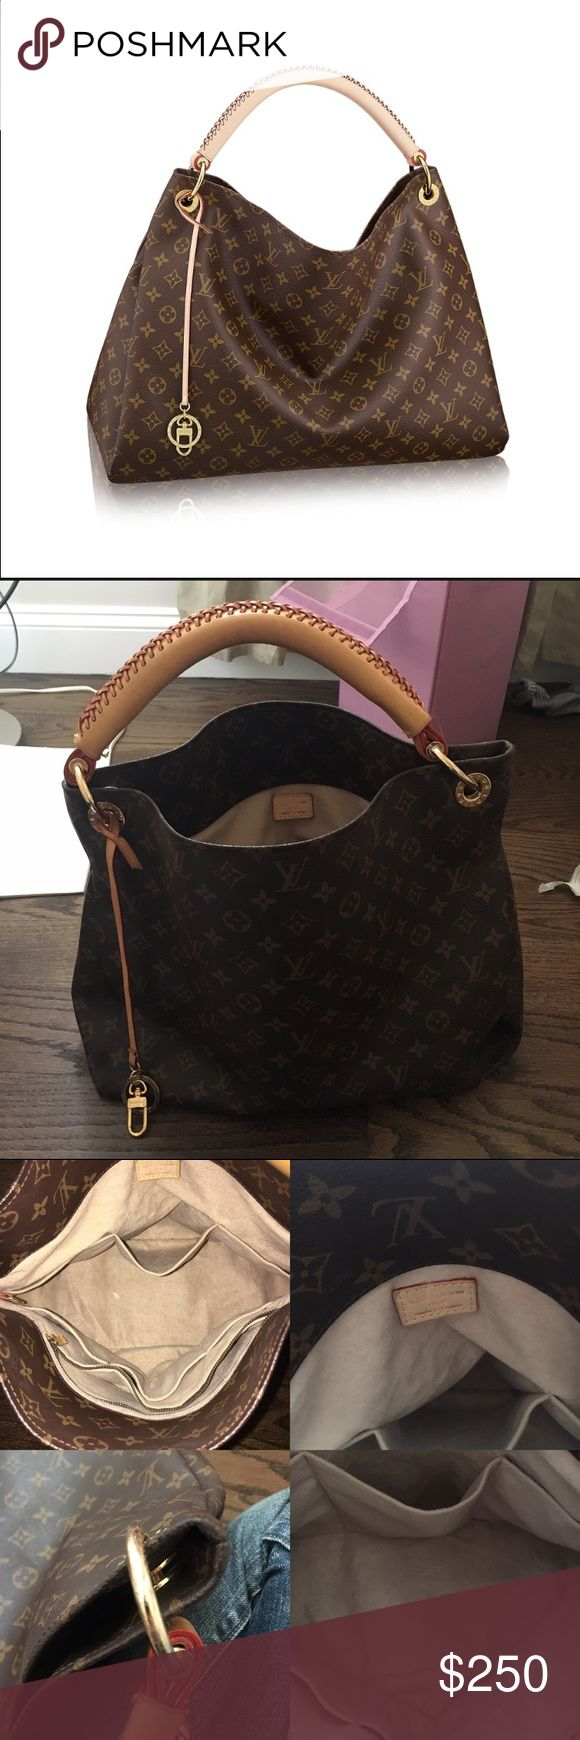 """Monogram Handbag Price reflects, almost identical to the real deal. Light wear on interior and handle as pictured. 6"""" depth, 15"""" length, 12"""" height Louis Vuitton Bags Hobos"""